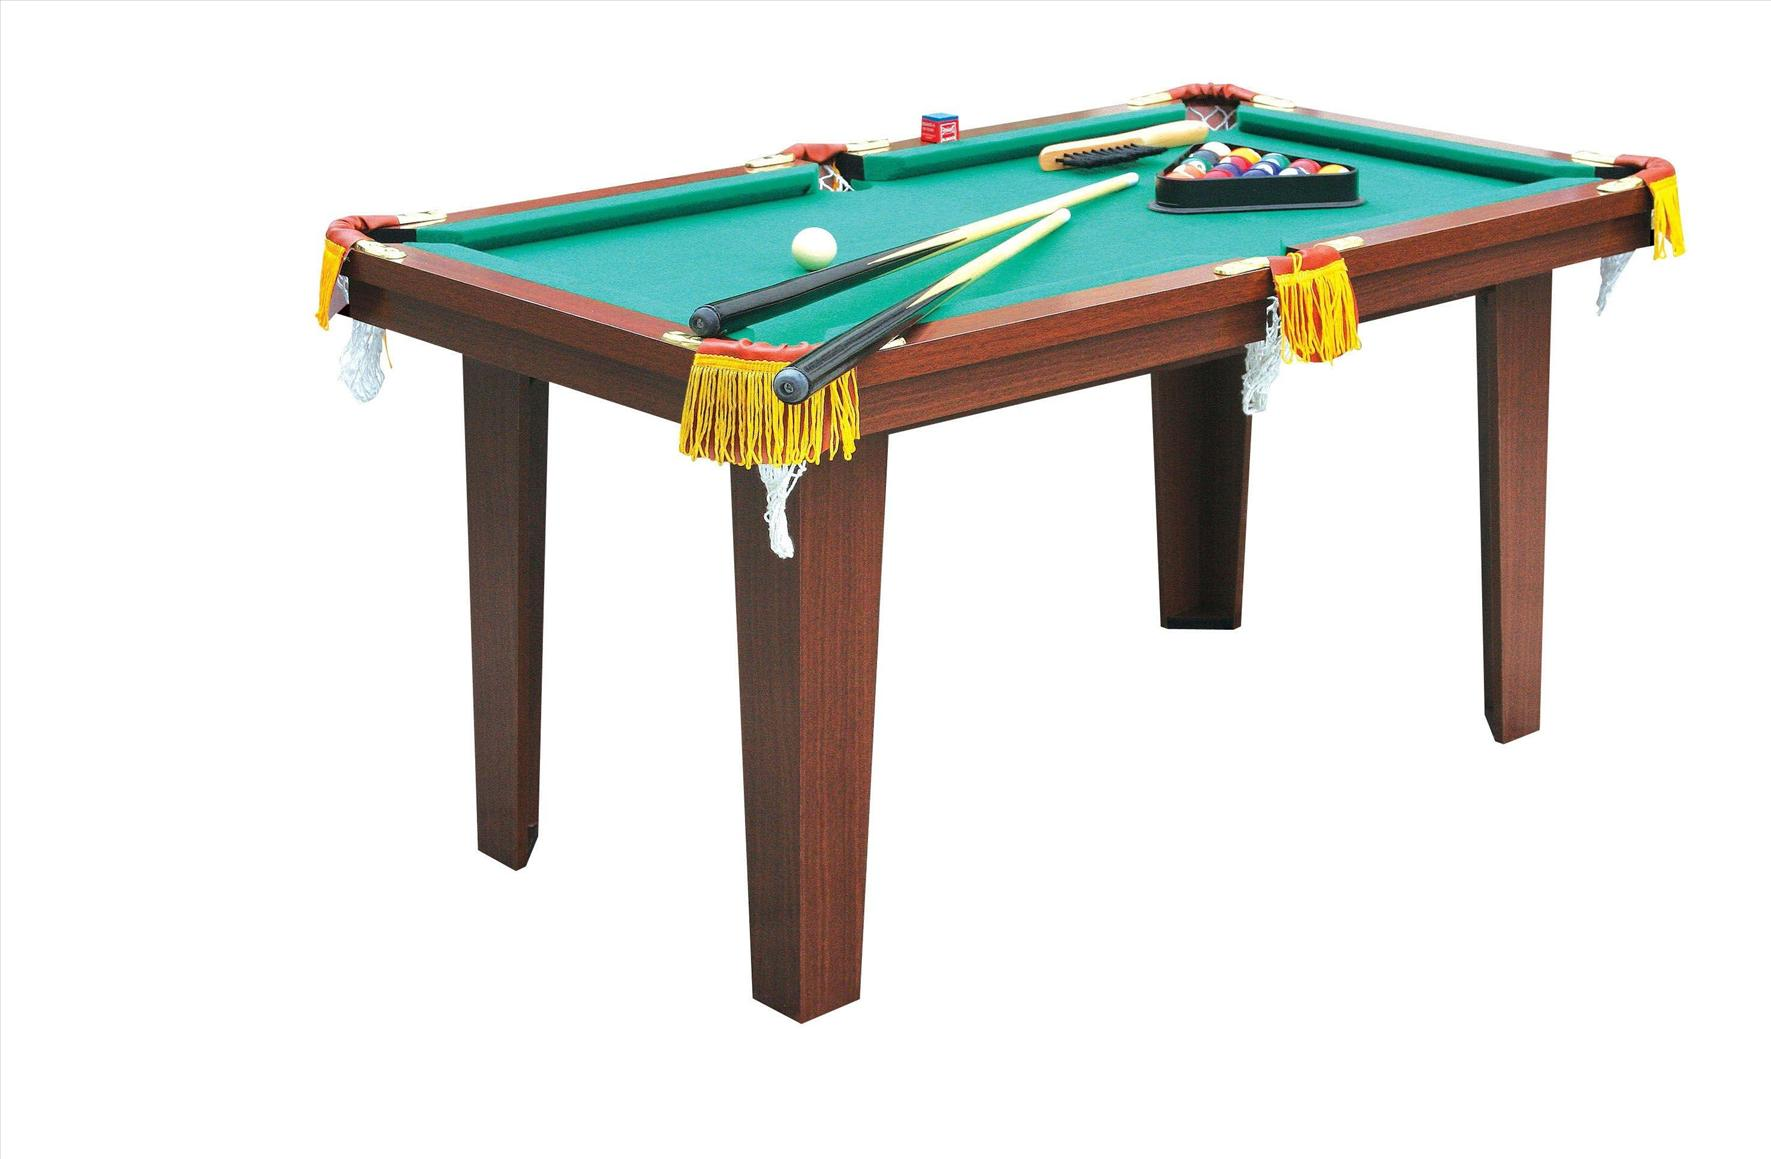 Mini Pool Billiard Sports Table (Upright) - 3 feet